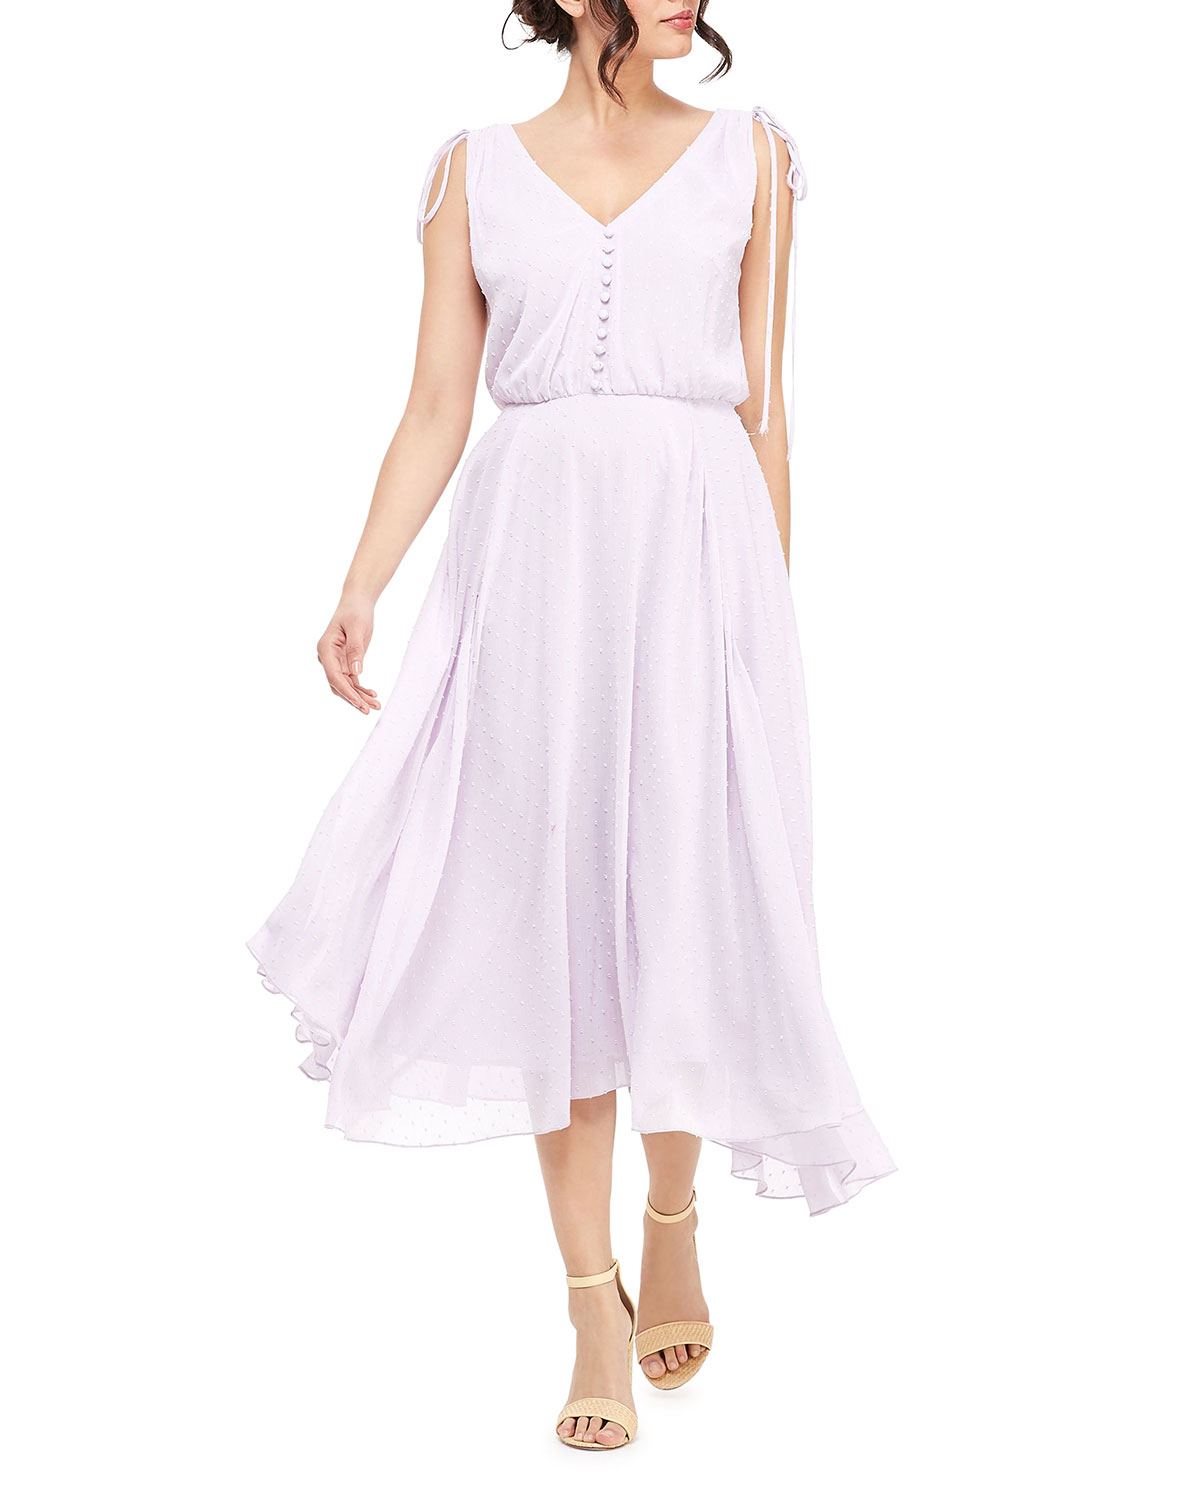 Gal Meets Glam V-neck Sleeveless Tie-Shoulder Midi Dress